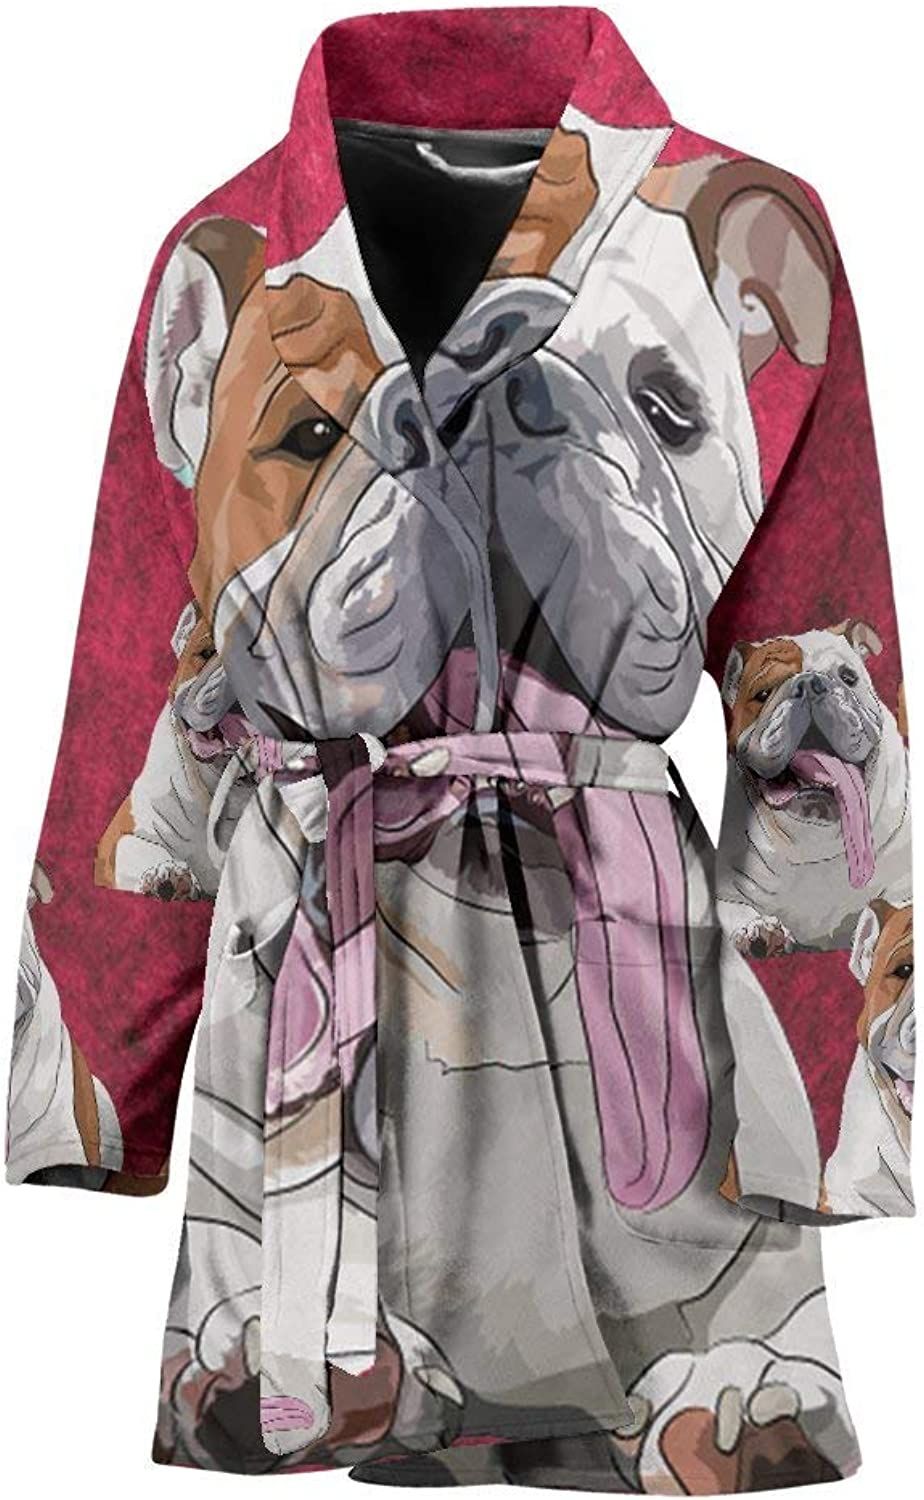 Pawfeel Amazing Bulldog Art Print Women's Bath Robe